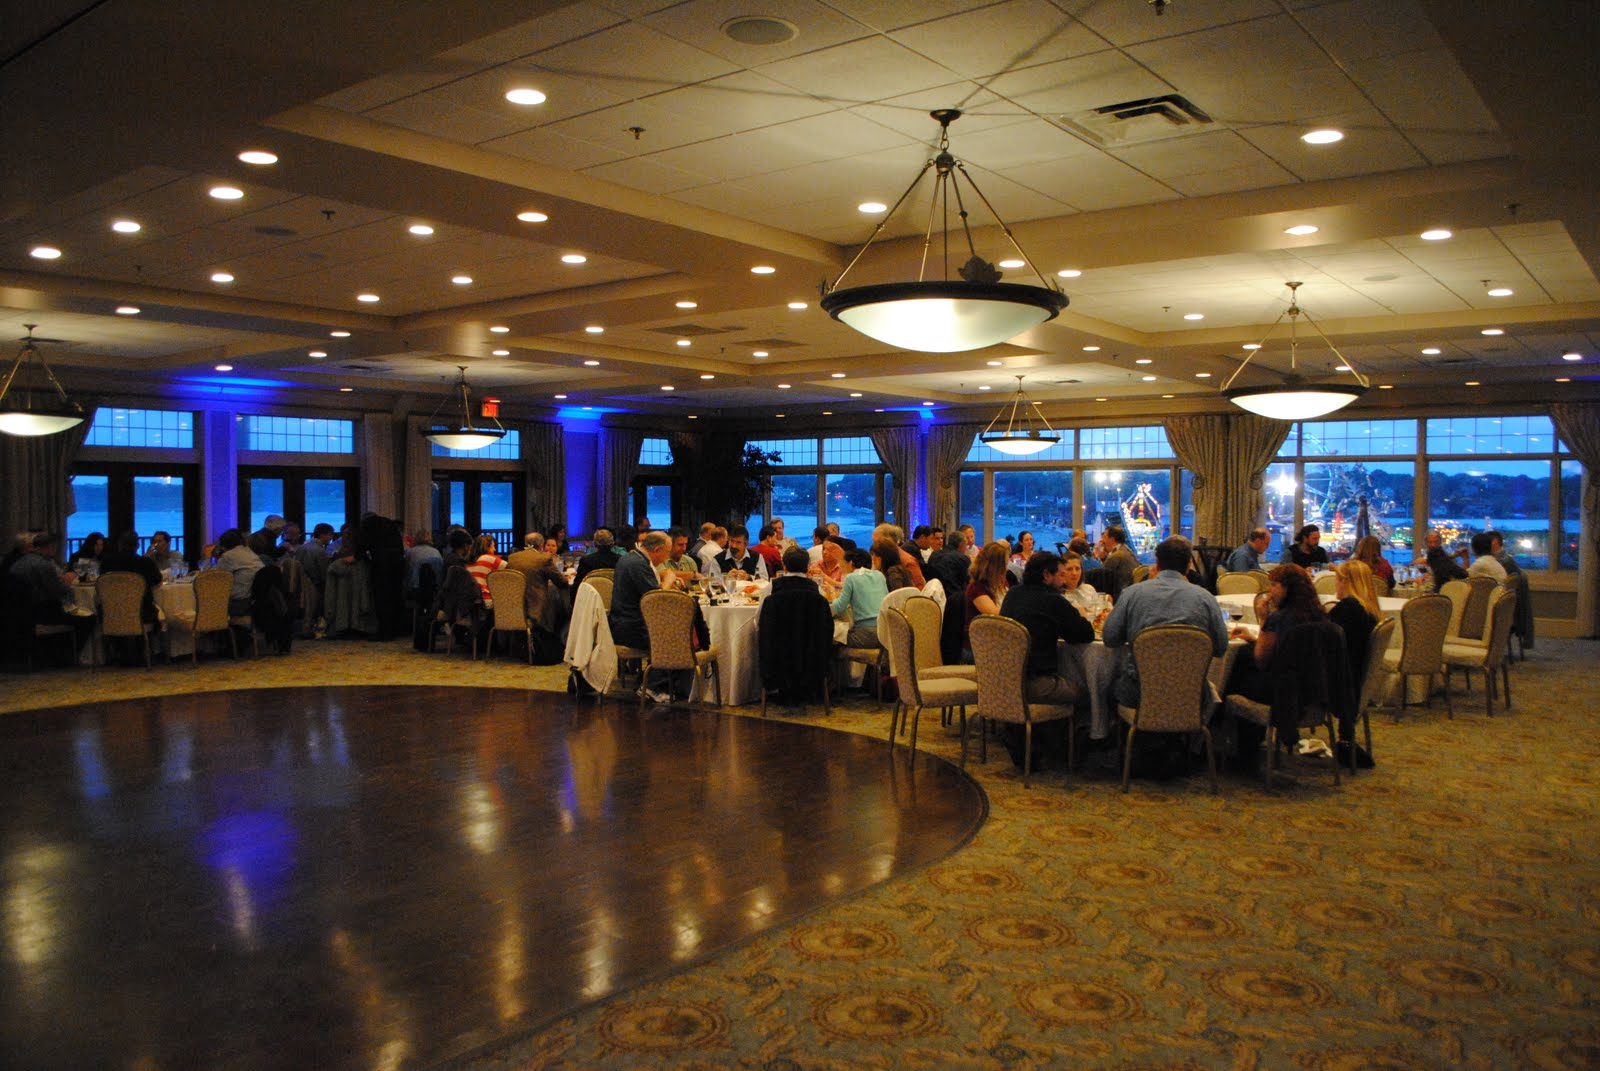 On May 19th We Were Back At The Atlantic Beach Club In Newport RI This Time Providing Entertainment For A Corporate Event